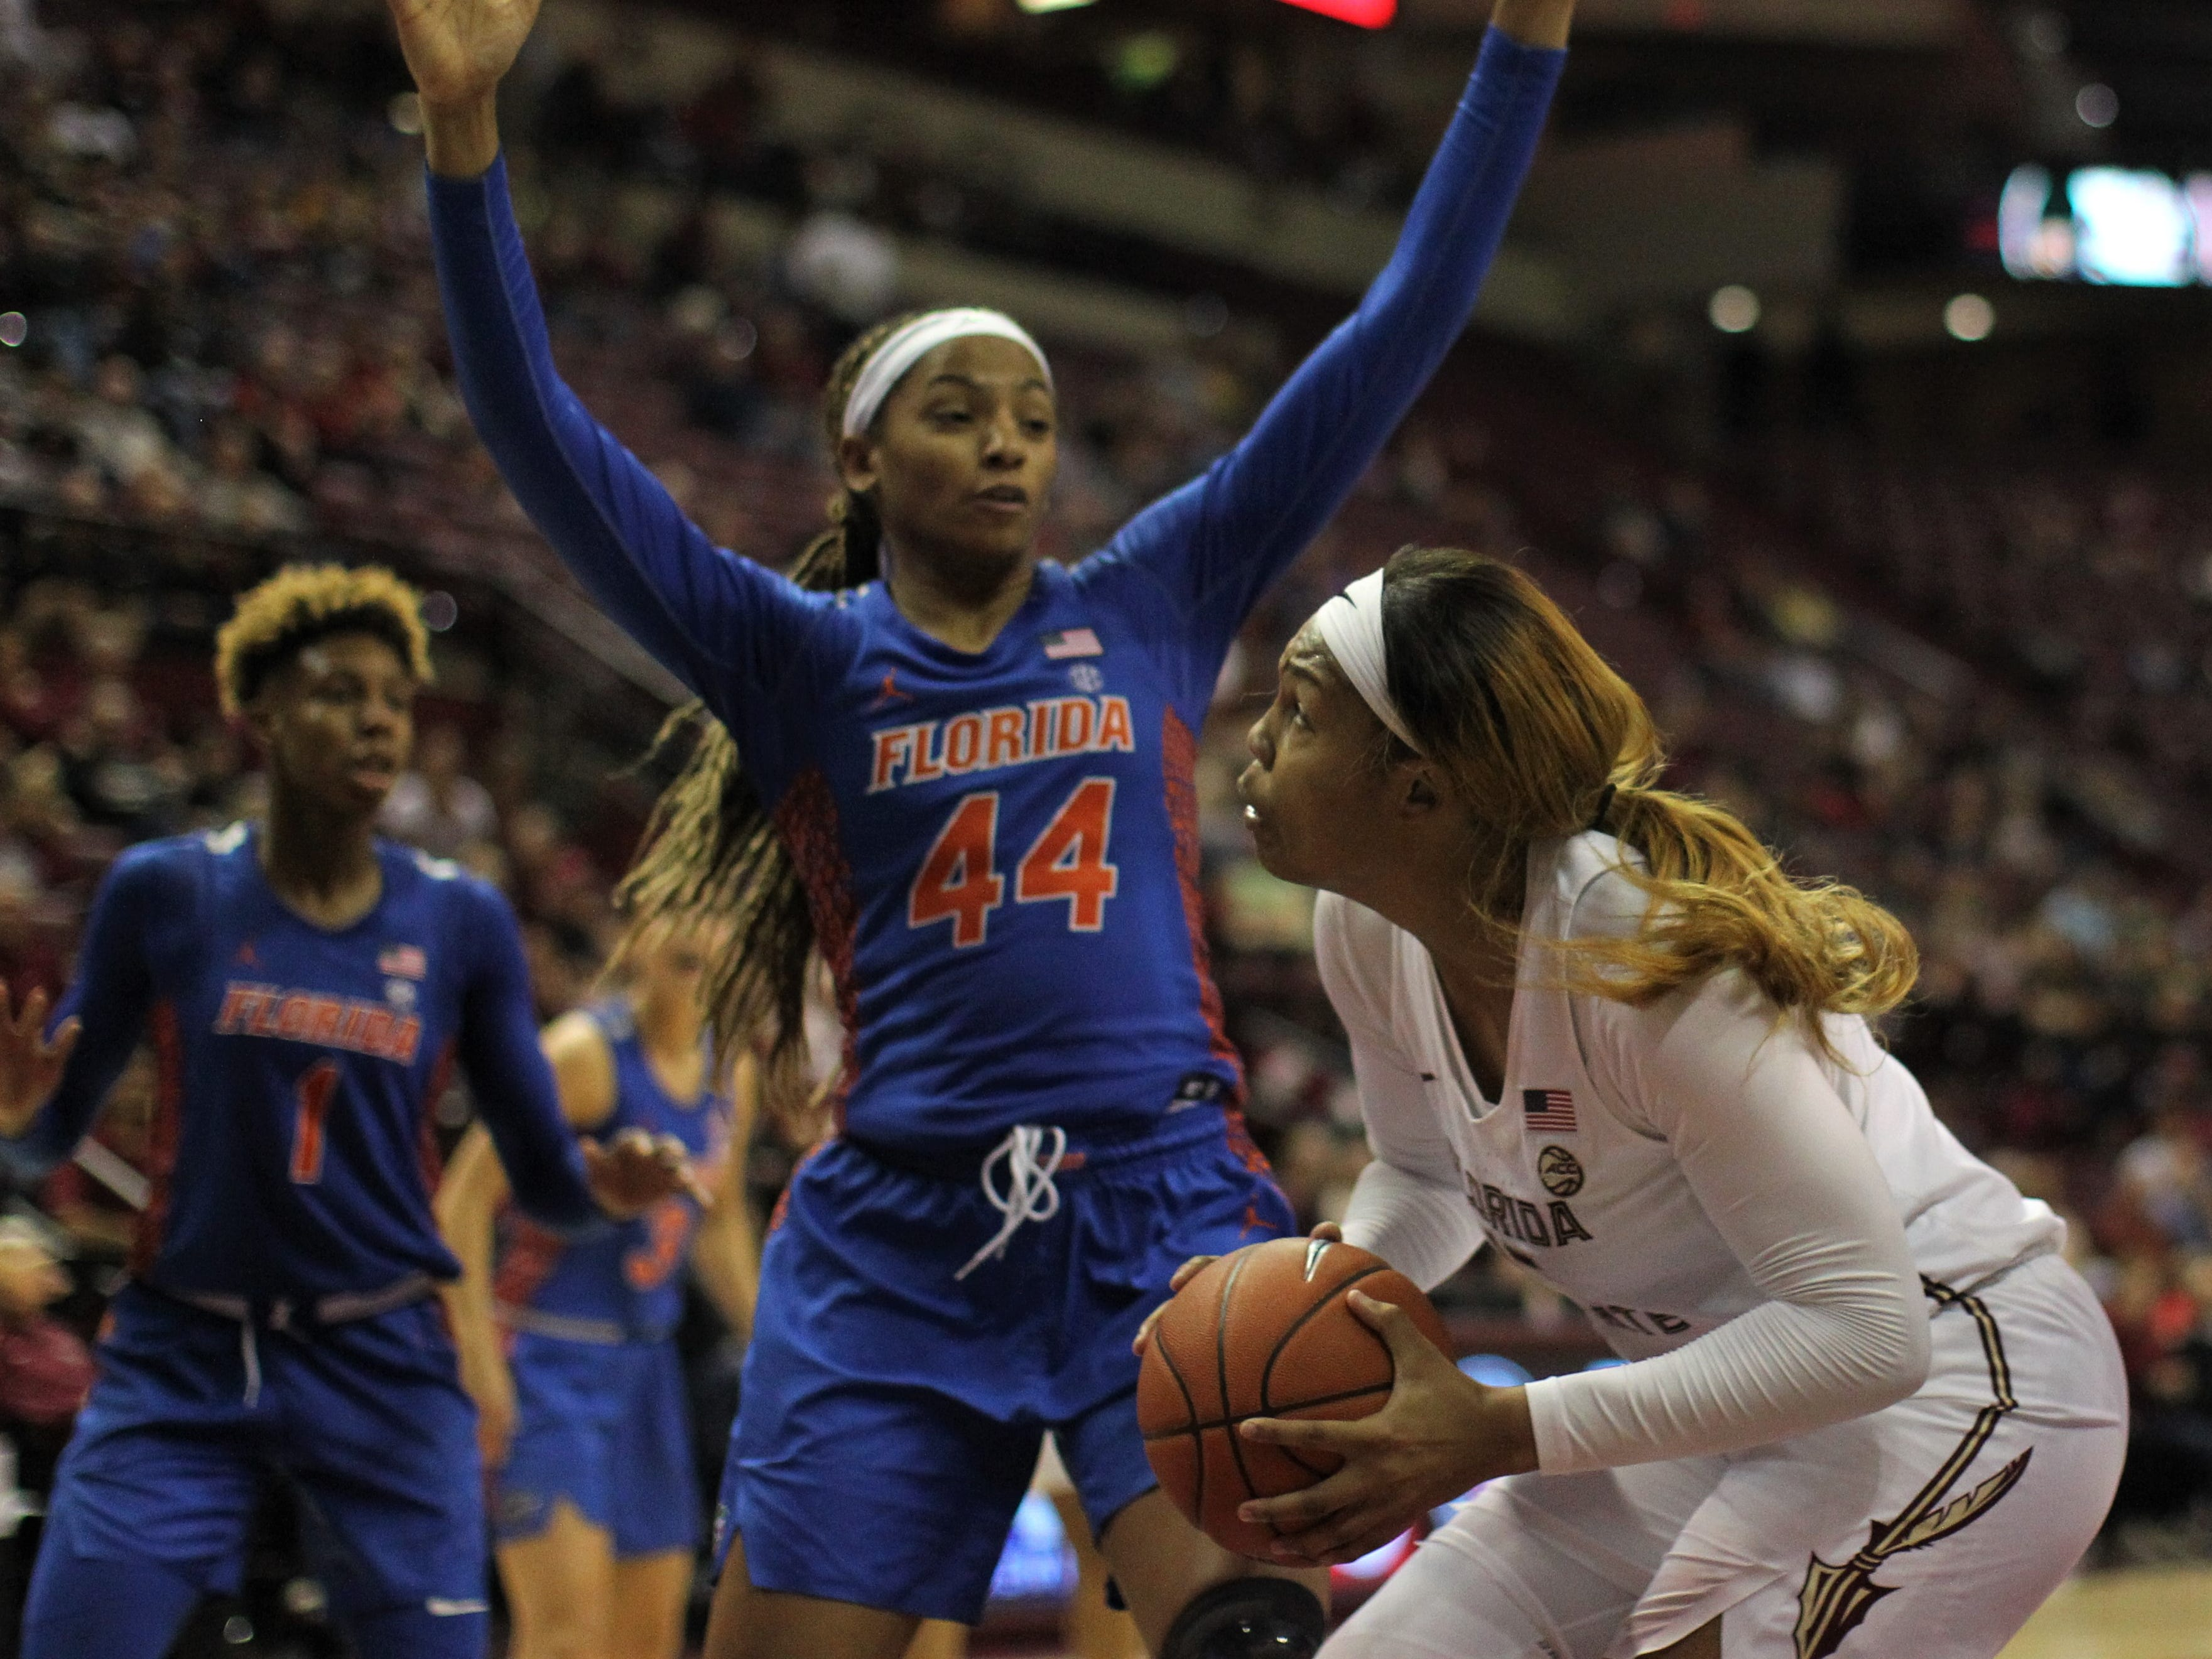 Florida State's Kiah Gillespie pump fakes a UF's Paige Robinson during the second half of the Seminoles' game against Florida at the Tucker Civic Center on Nov. 11, 2018.